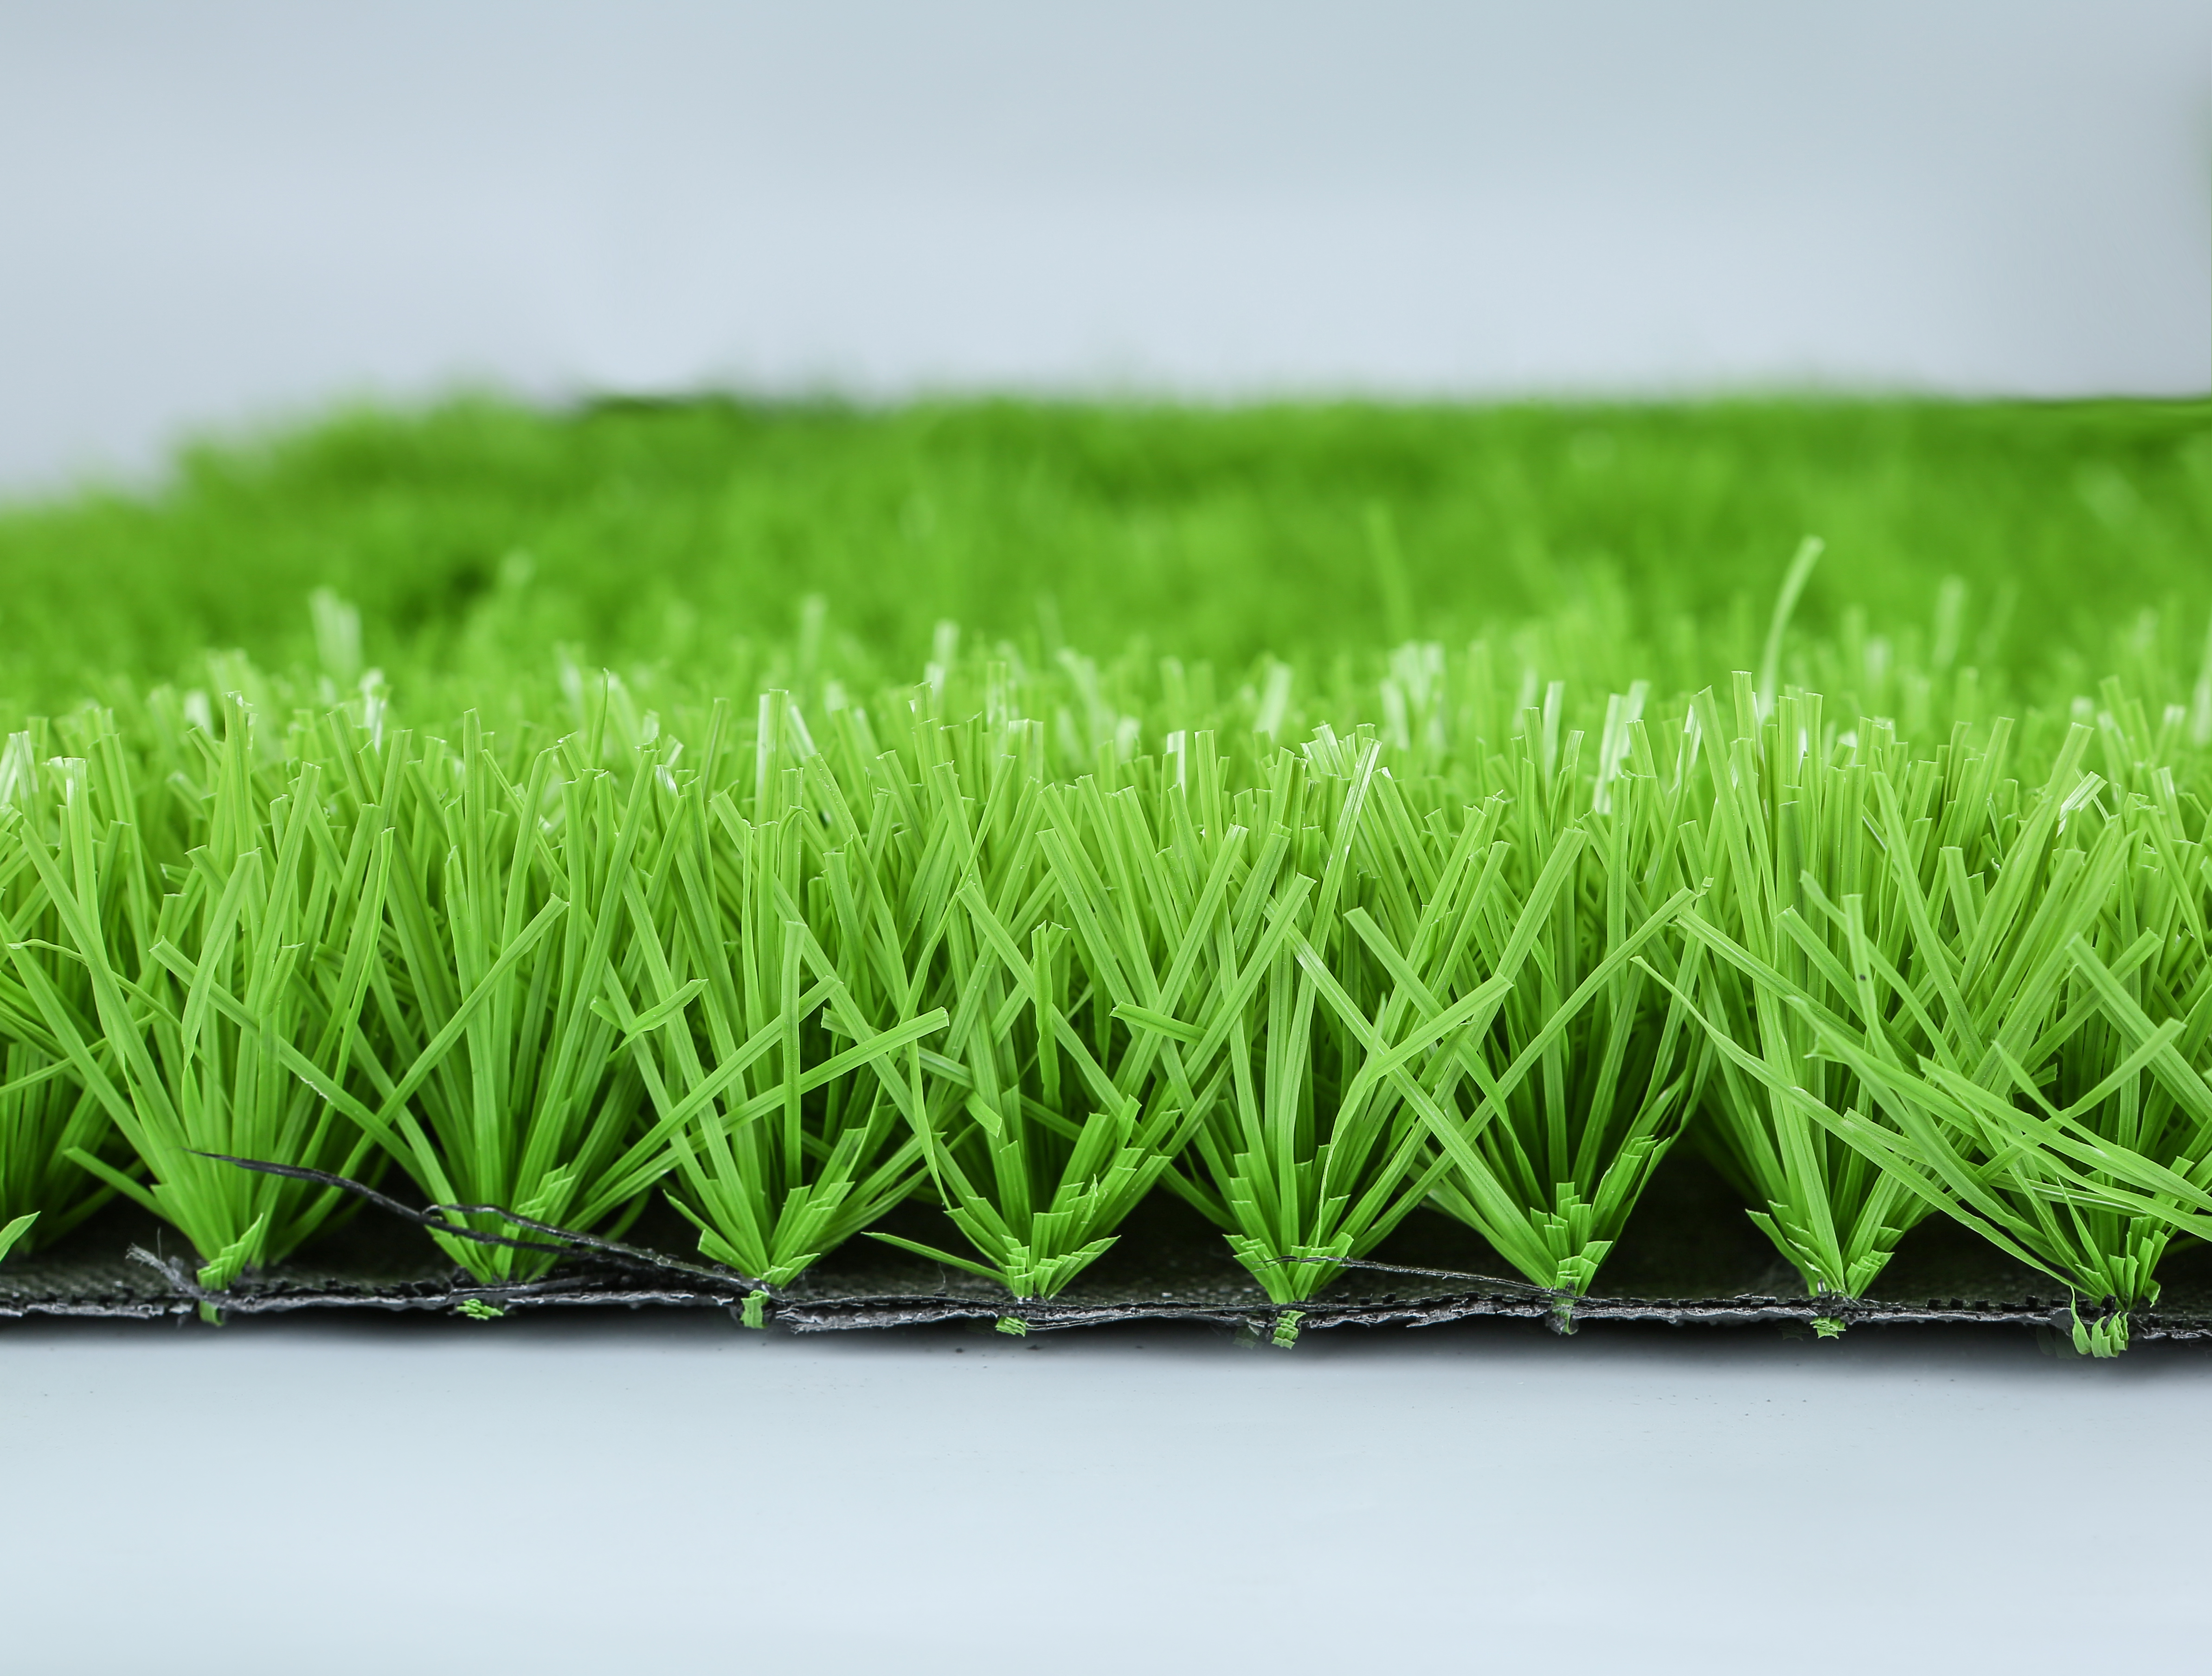 Artificial grass that makes people comfortable to exercise